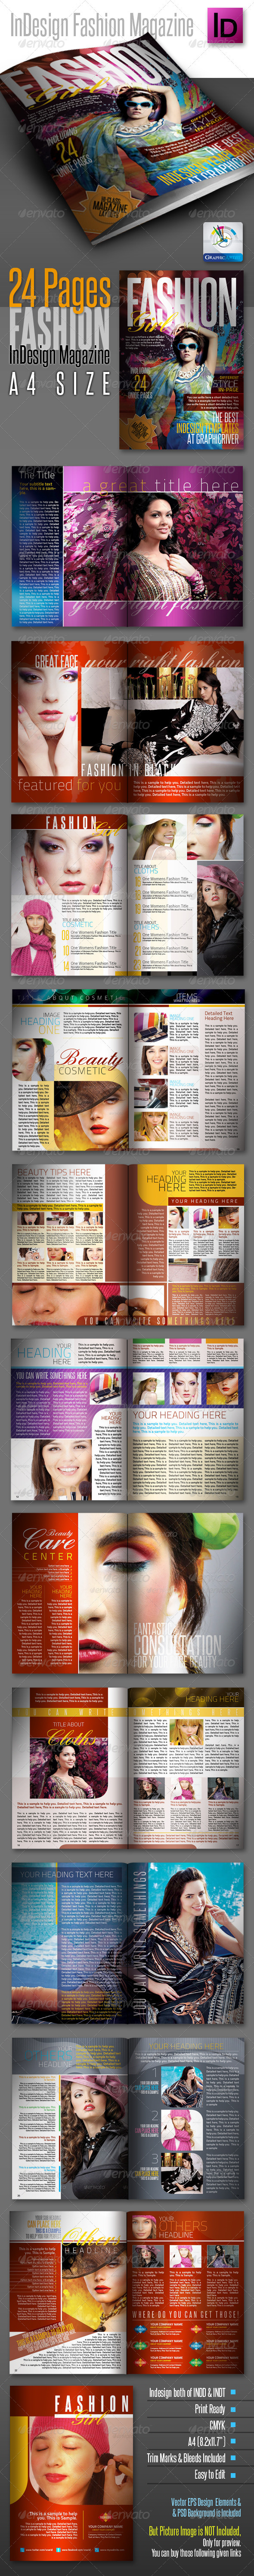 FashionGirl InDesign Modern Magazine 24pages - Magazines Print Templates